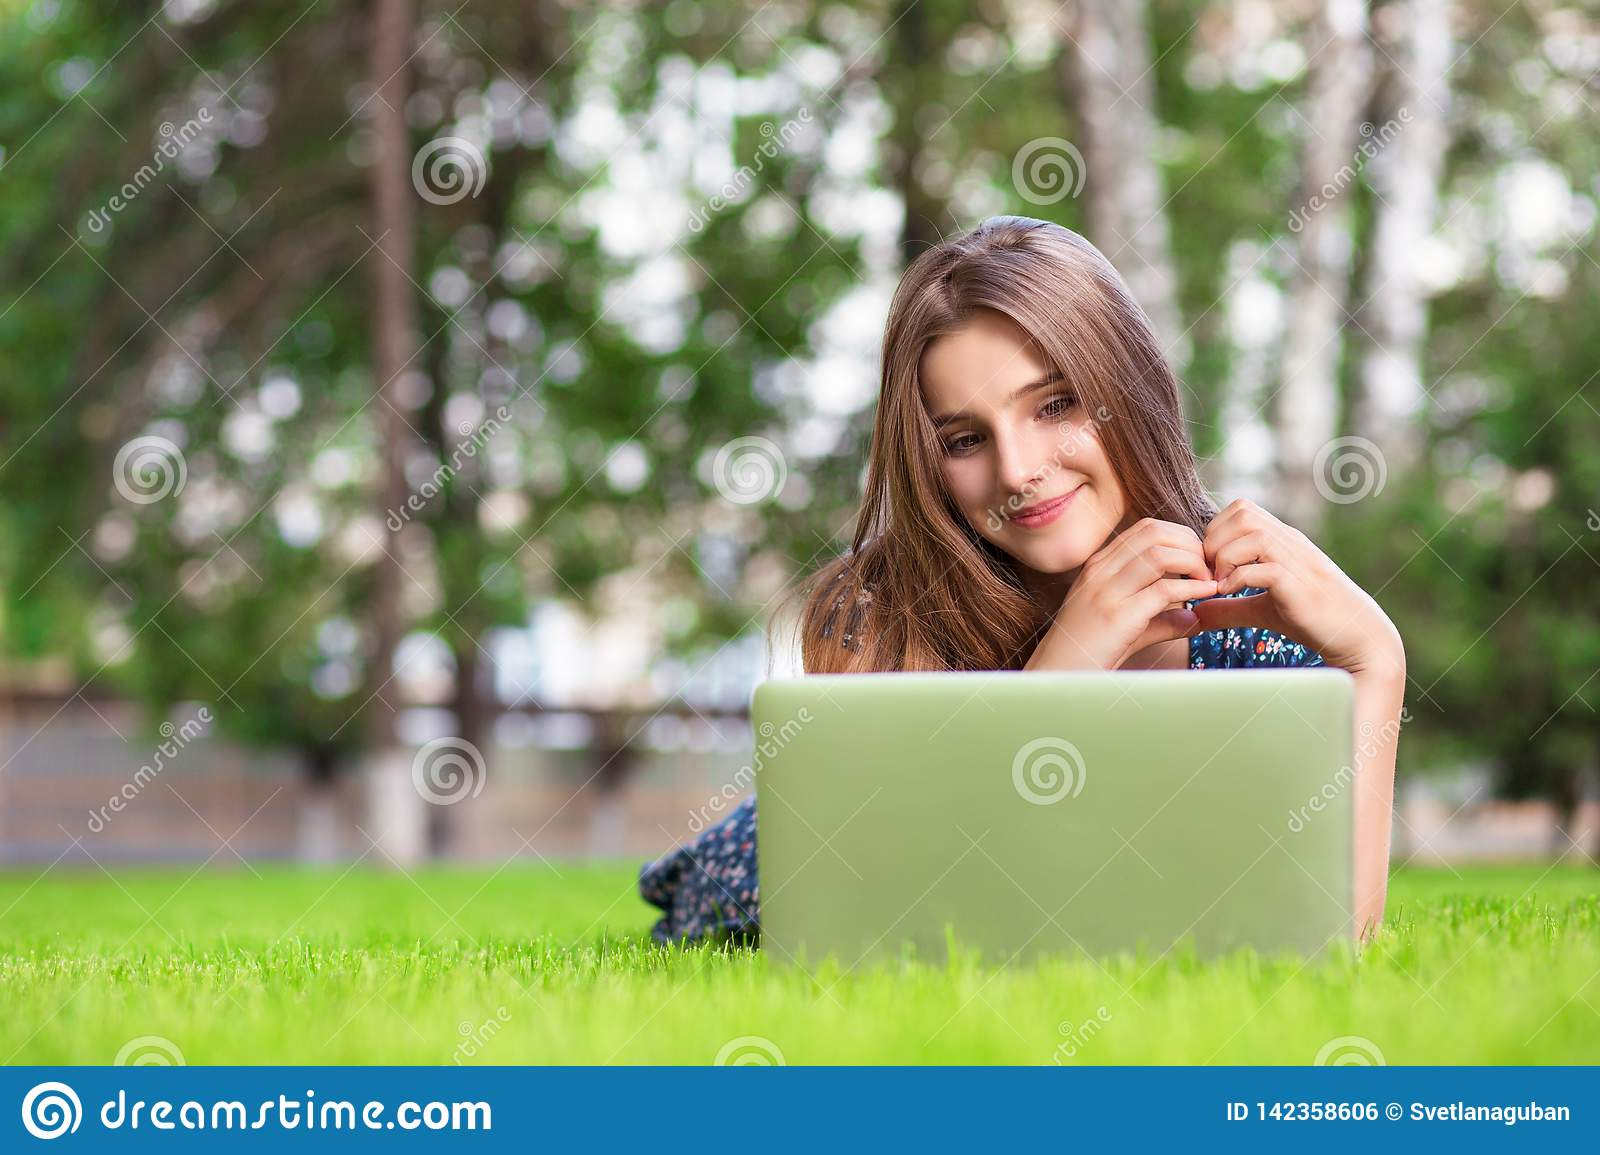 Woman with laptop at home happy showing love with hands in heart shape